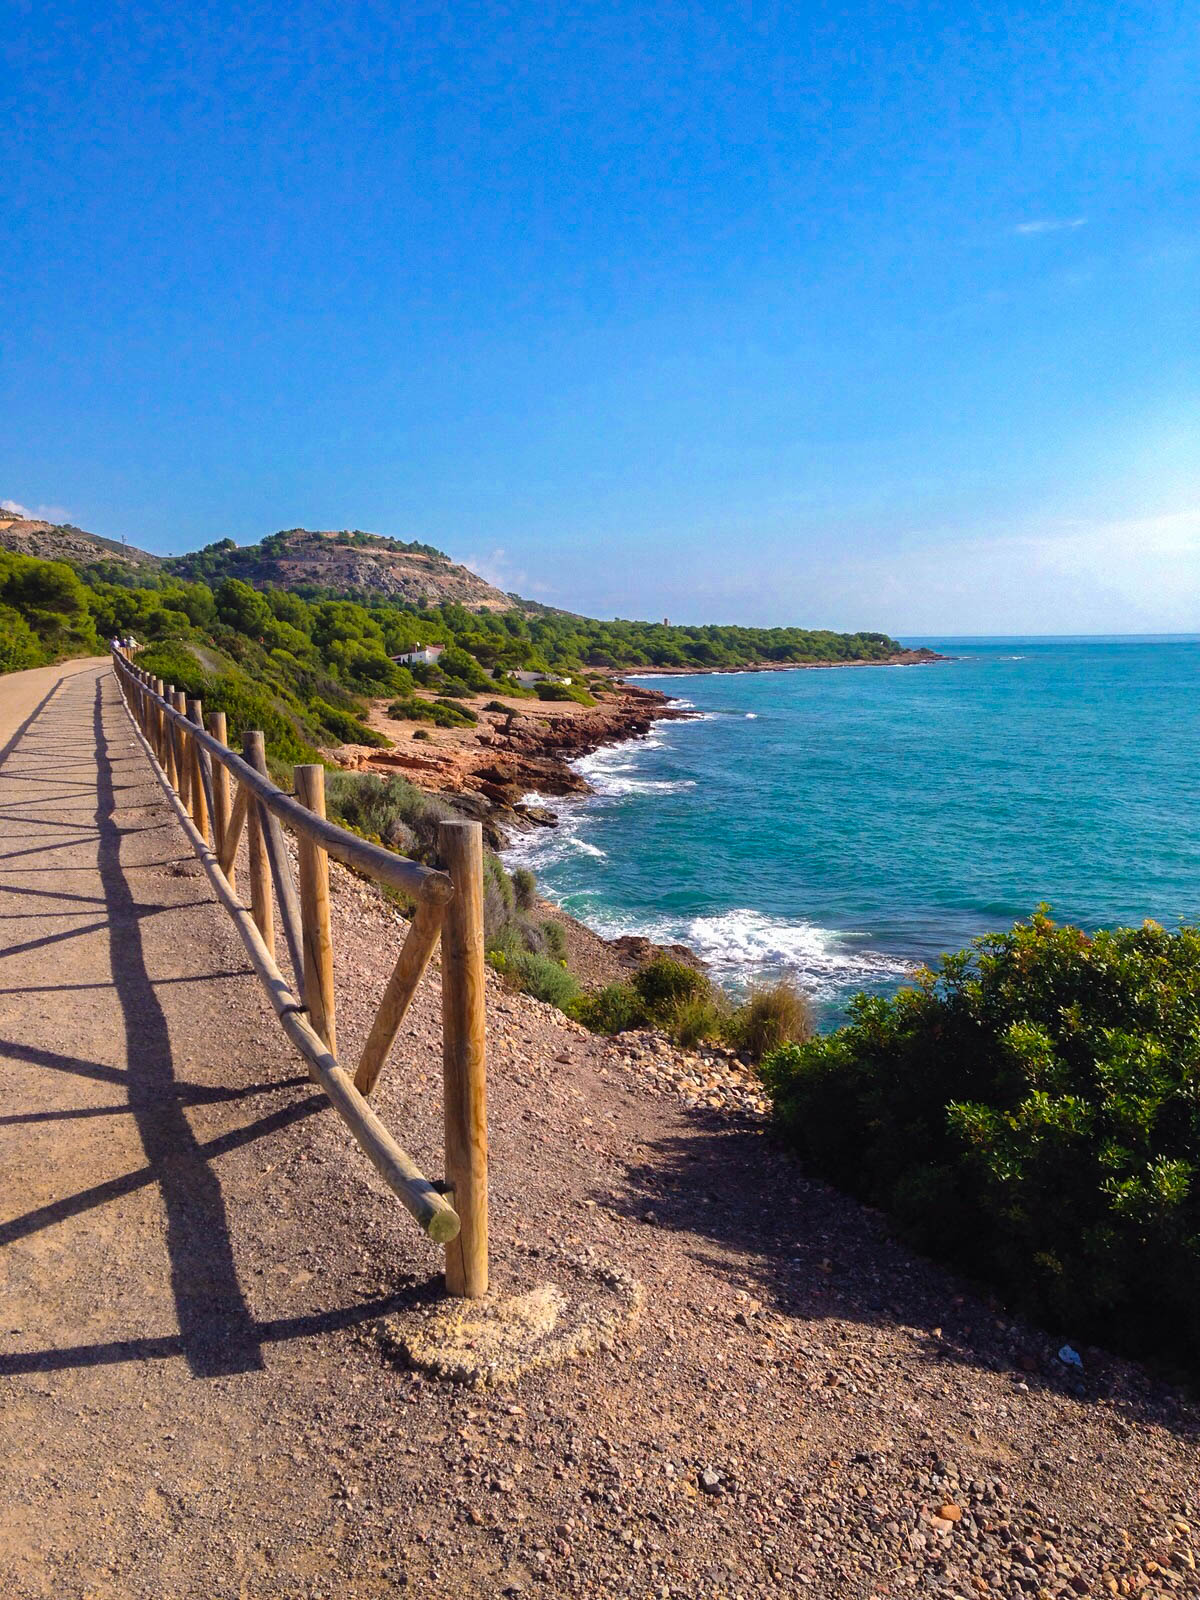 Things To See and Do in Benicassim, Spain